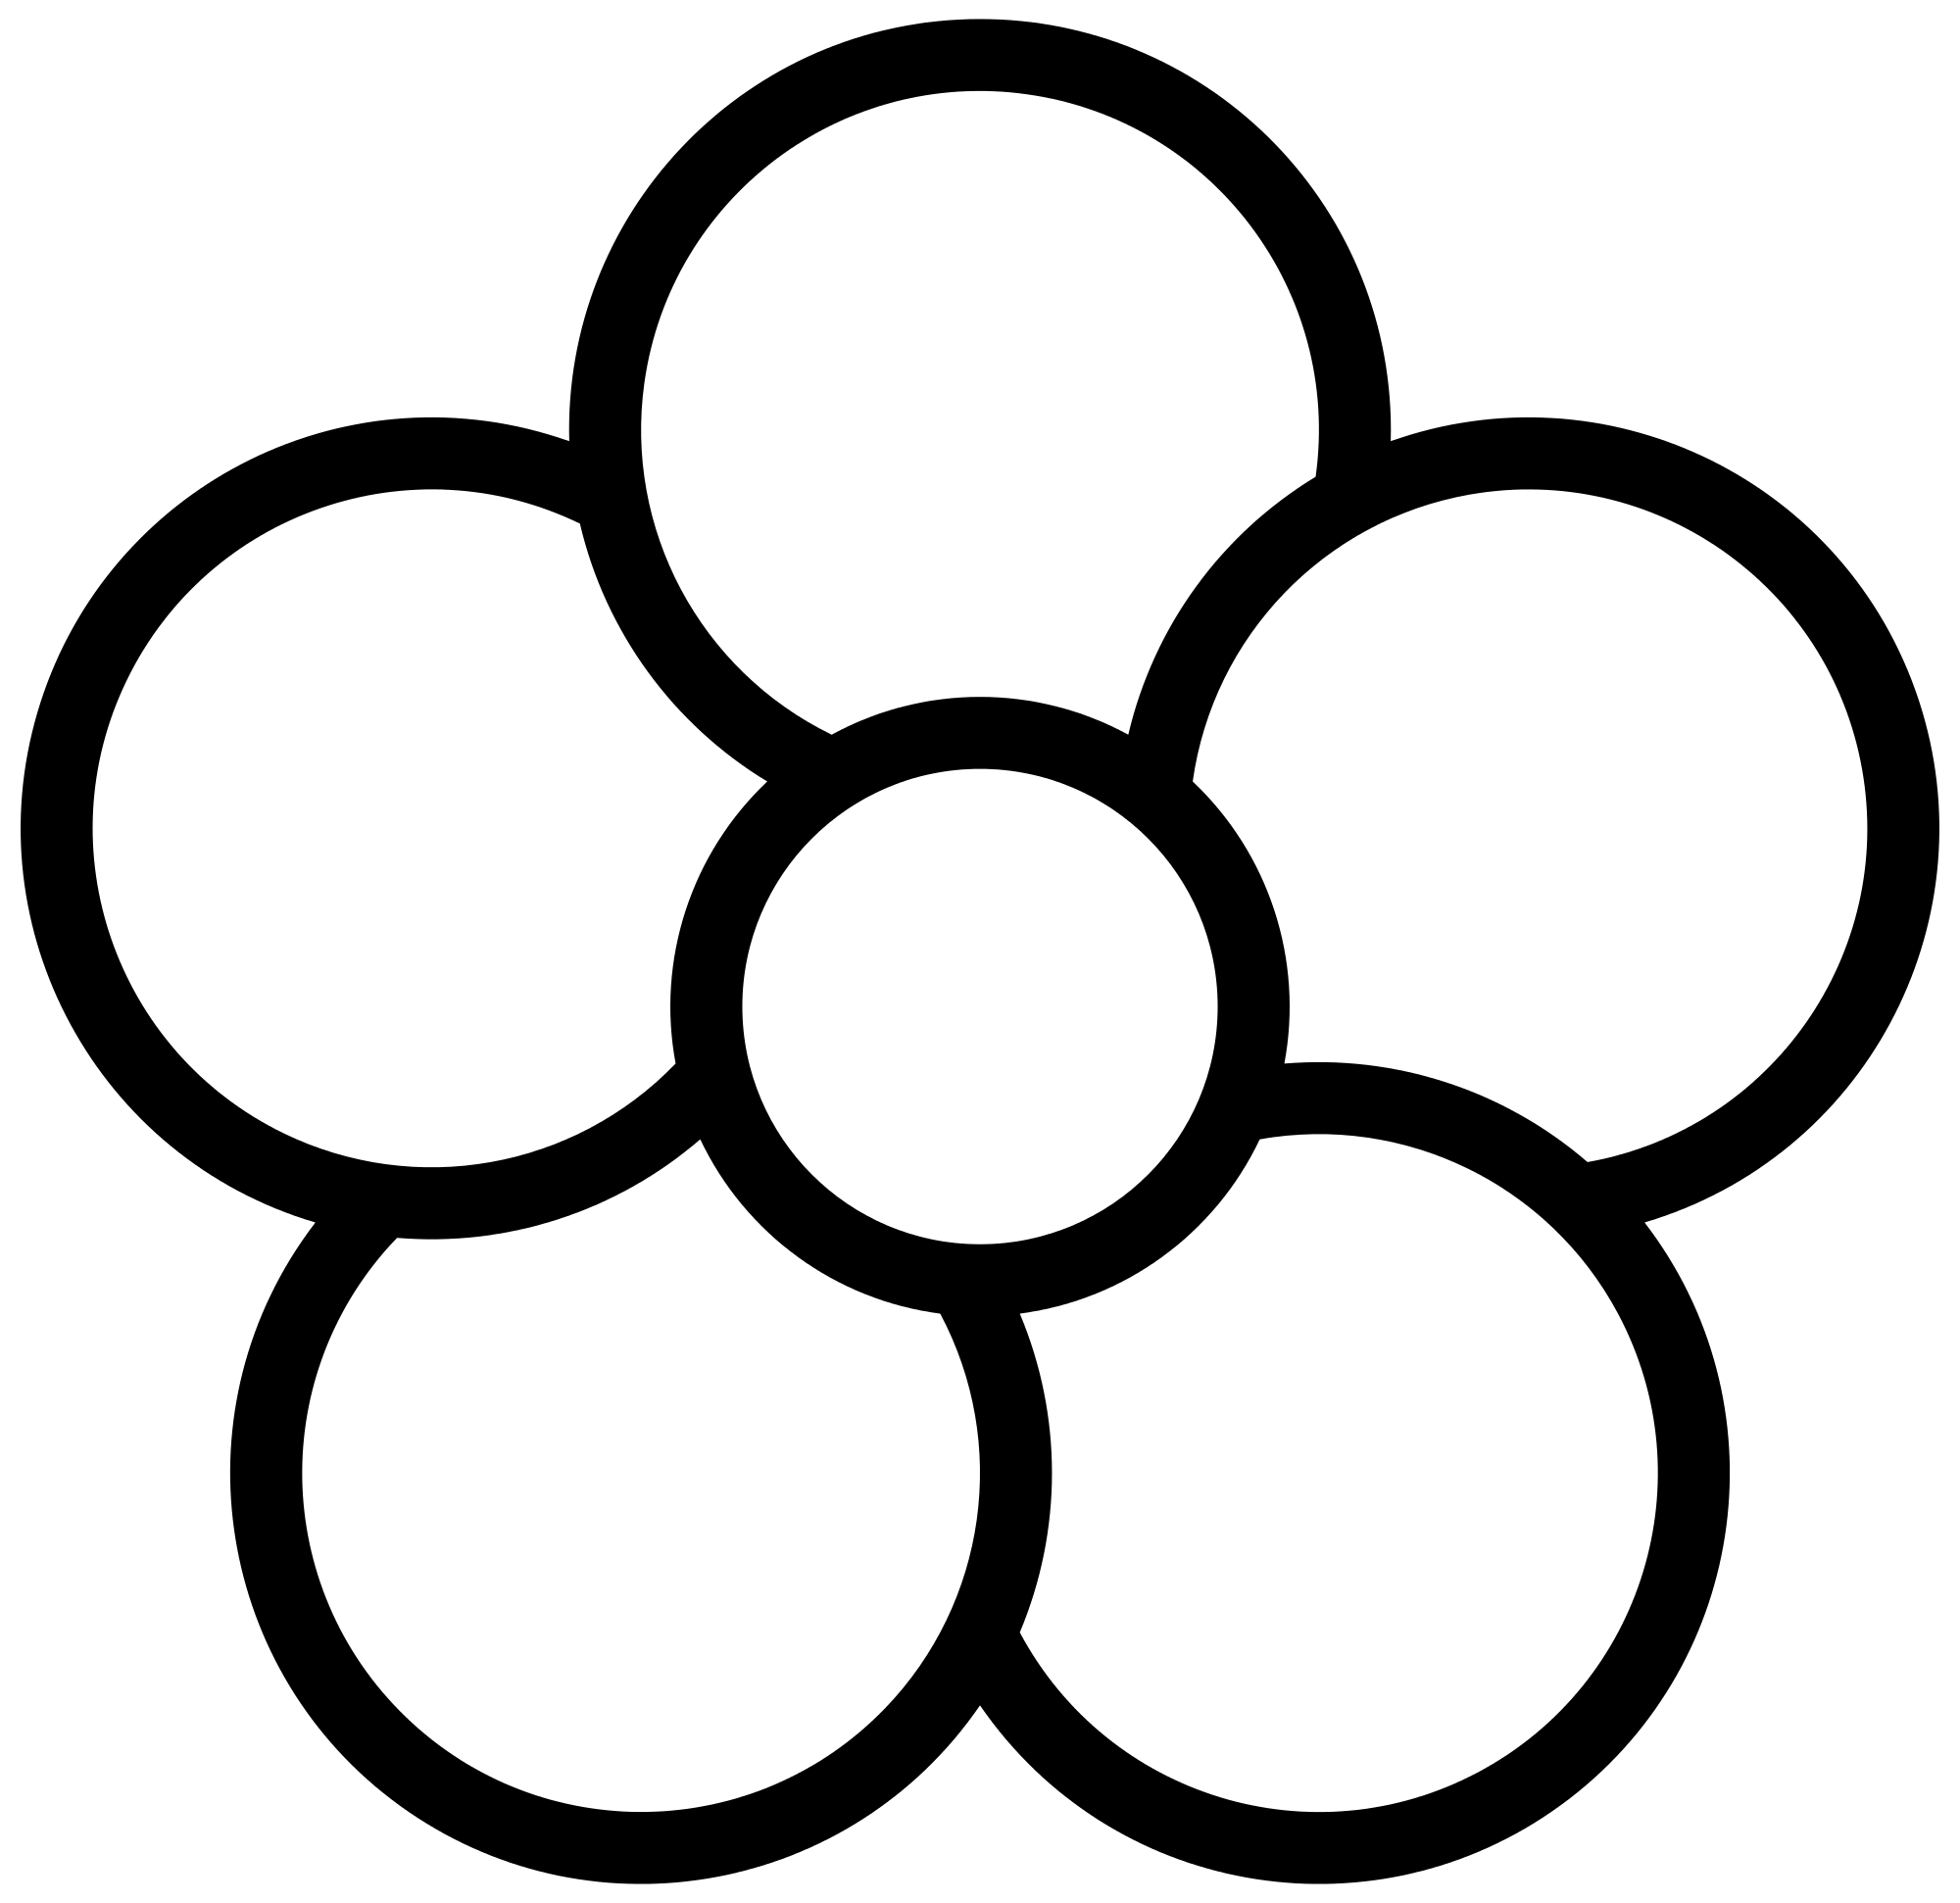 Flower black and white png. With petals images decoration